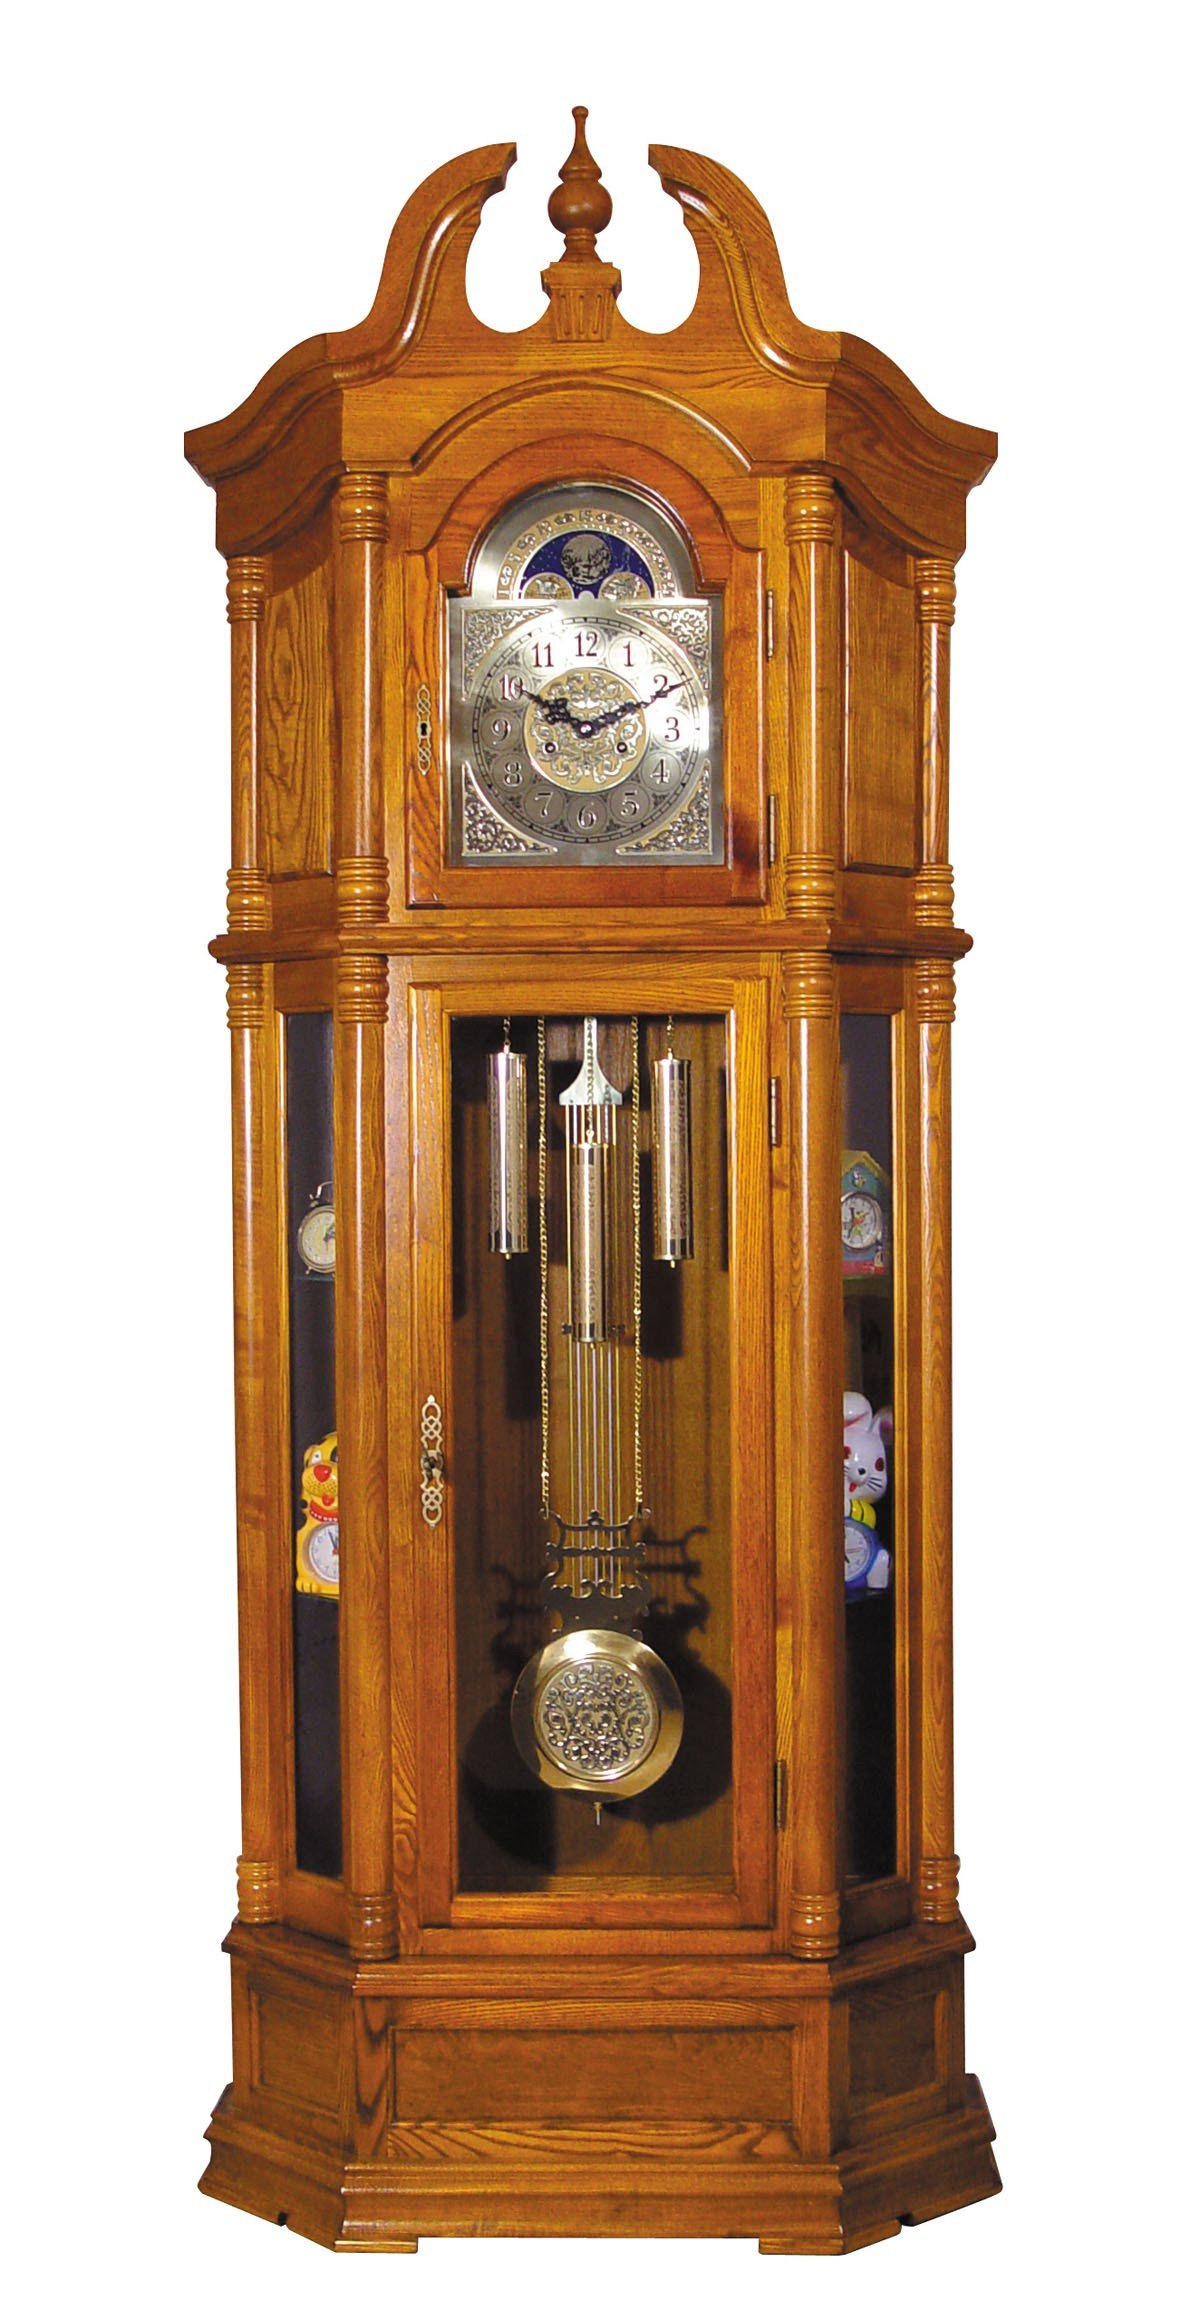 Major-Q 9001410 84'' H Traditional Style Oak Finish Key Wound Mechanicla Movement Block Footing Grandfather Floor Clock by Major-Q